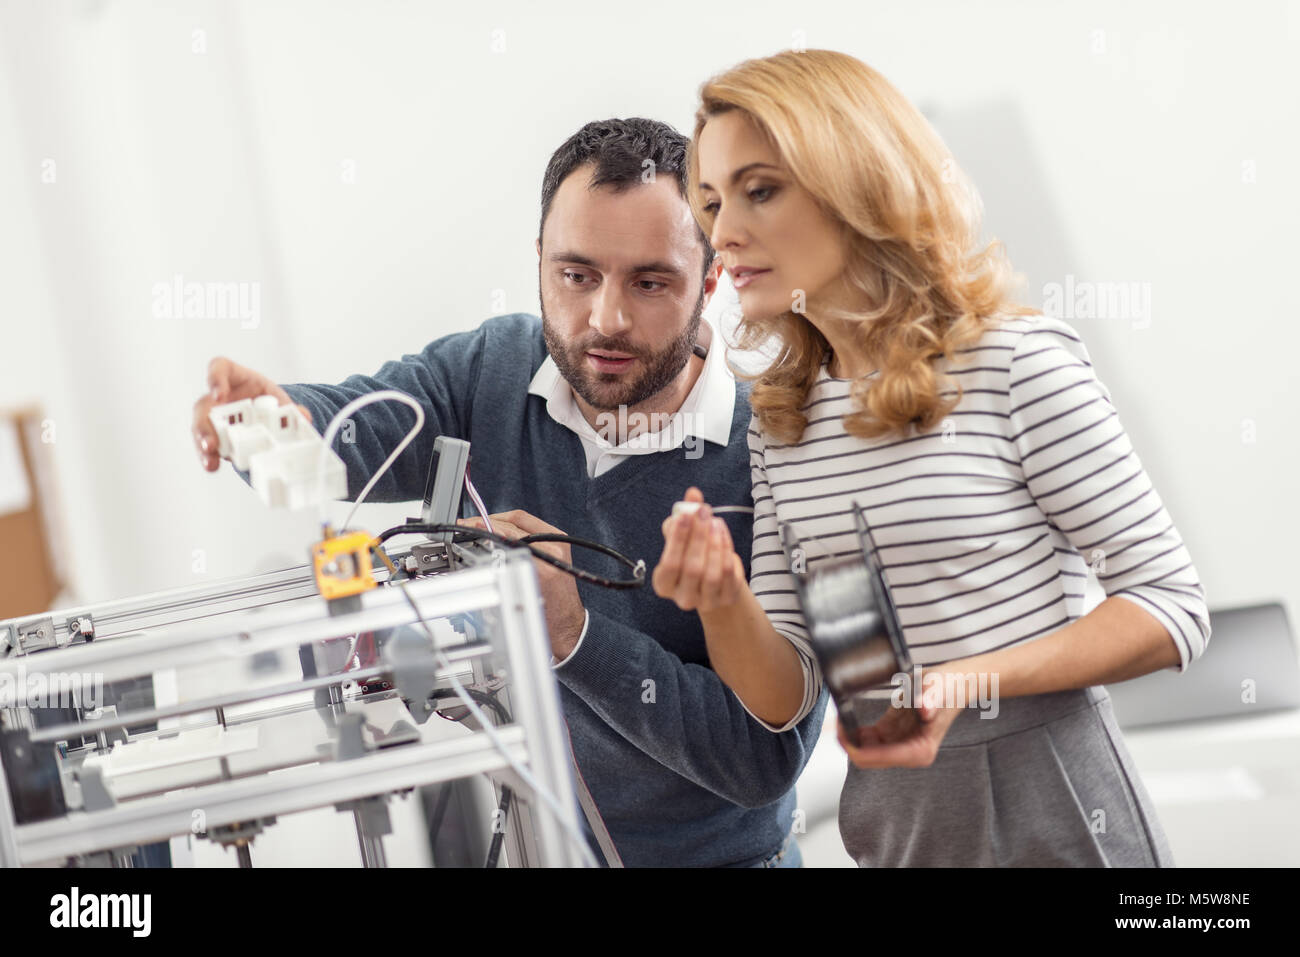 Pleasant colleagues running out of a filament - Stock Image